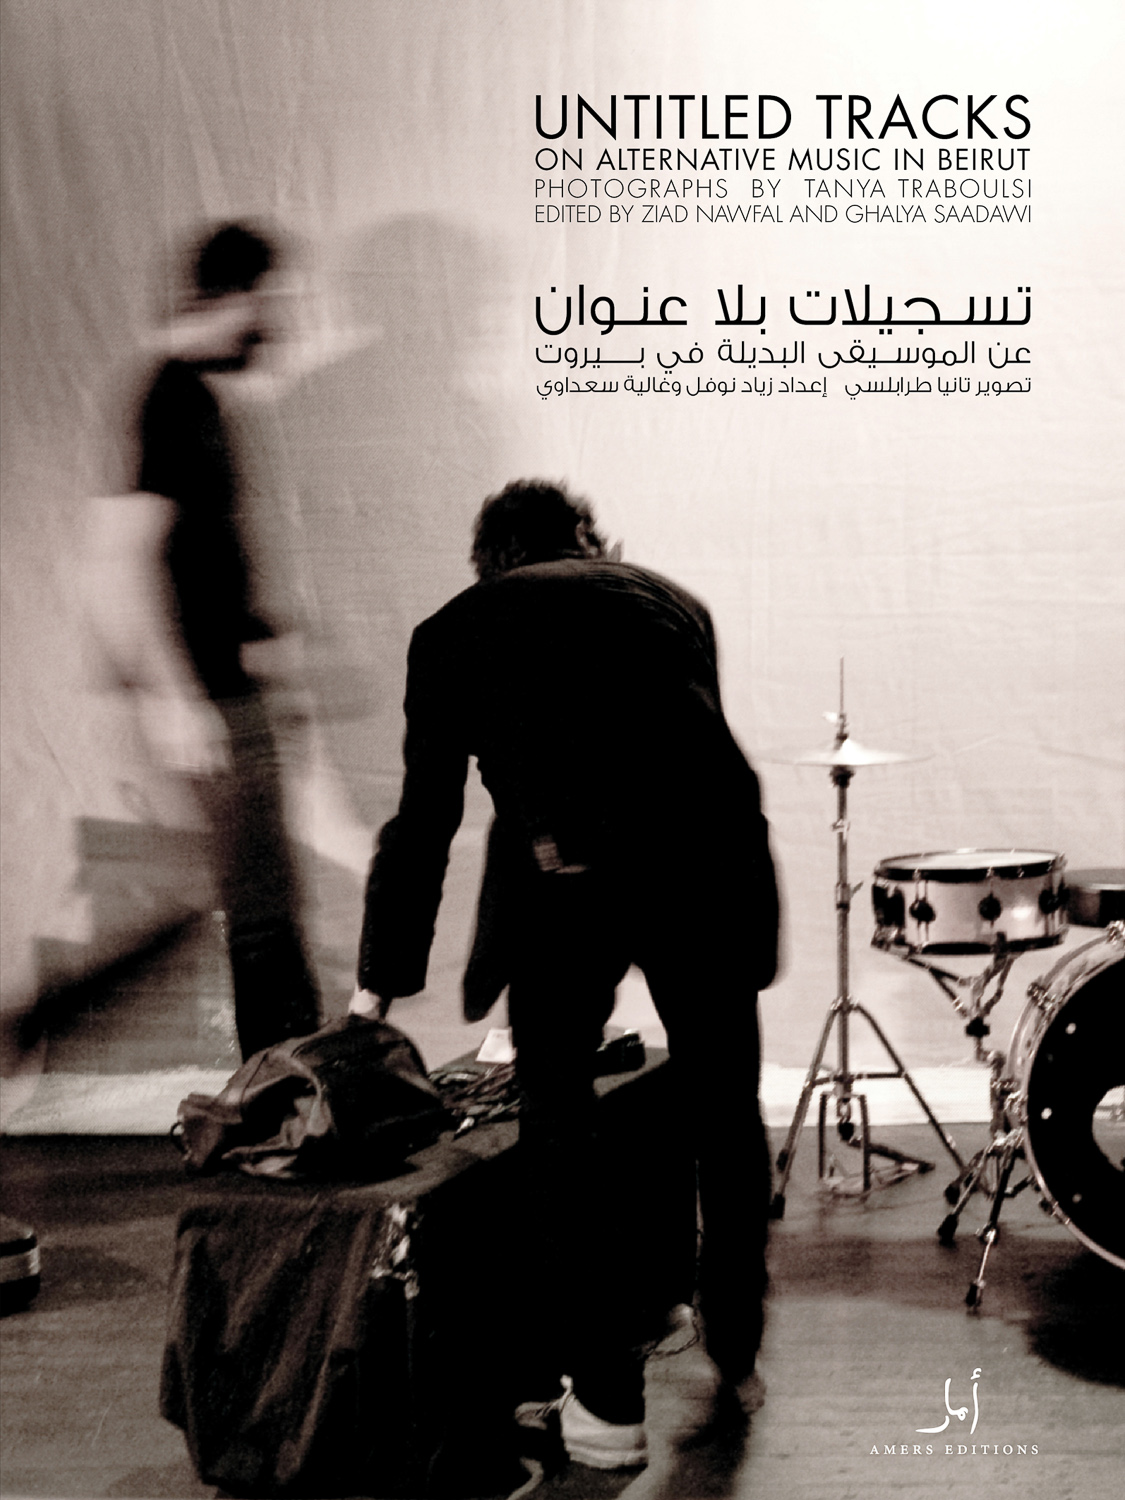 Untitled Tracks: On Alternative Music in Beirut  Book  Photographs by Tanya Traboulsi Edited by Ziad Nawfal and Ghalya Saadawi Published by Amers Editions Beirut, Lebanon Soft cover, full color, 166 pages 18 x 24cm March 2010   Untitled Tracks: On Alternative Music in Beirut  assembles texts and photographs about the manifold, mutating and increasingly visible alternative musical landscape in Beirut.